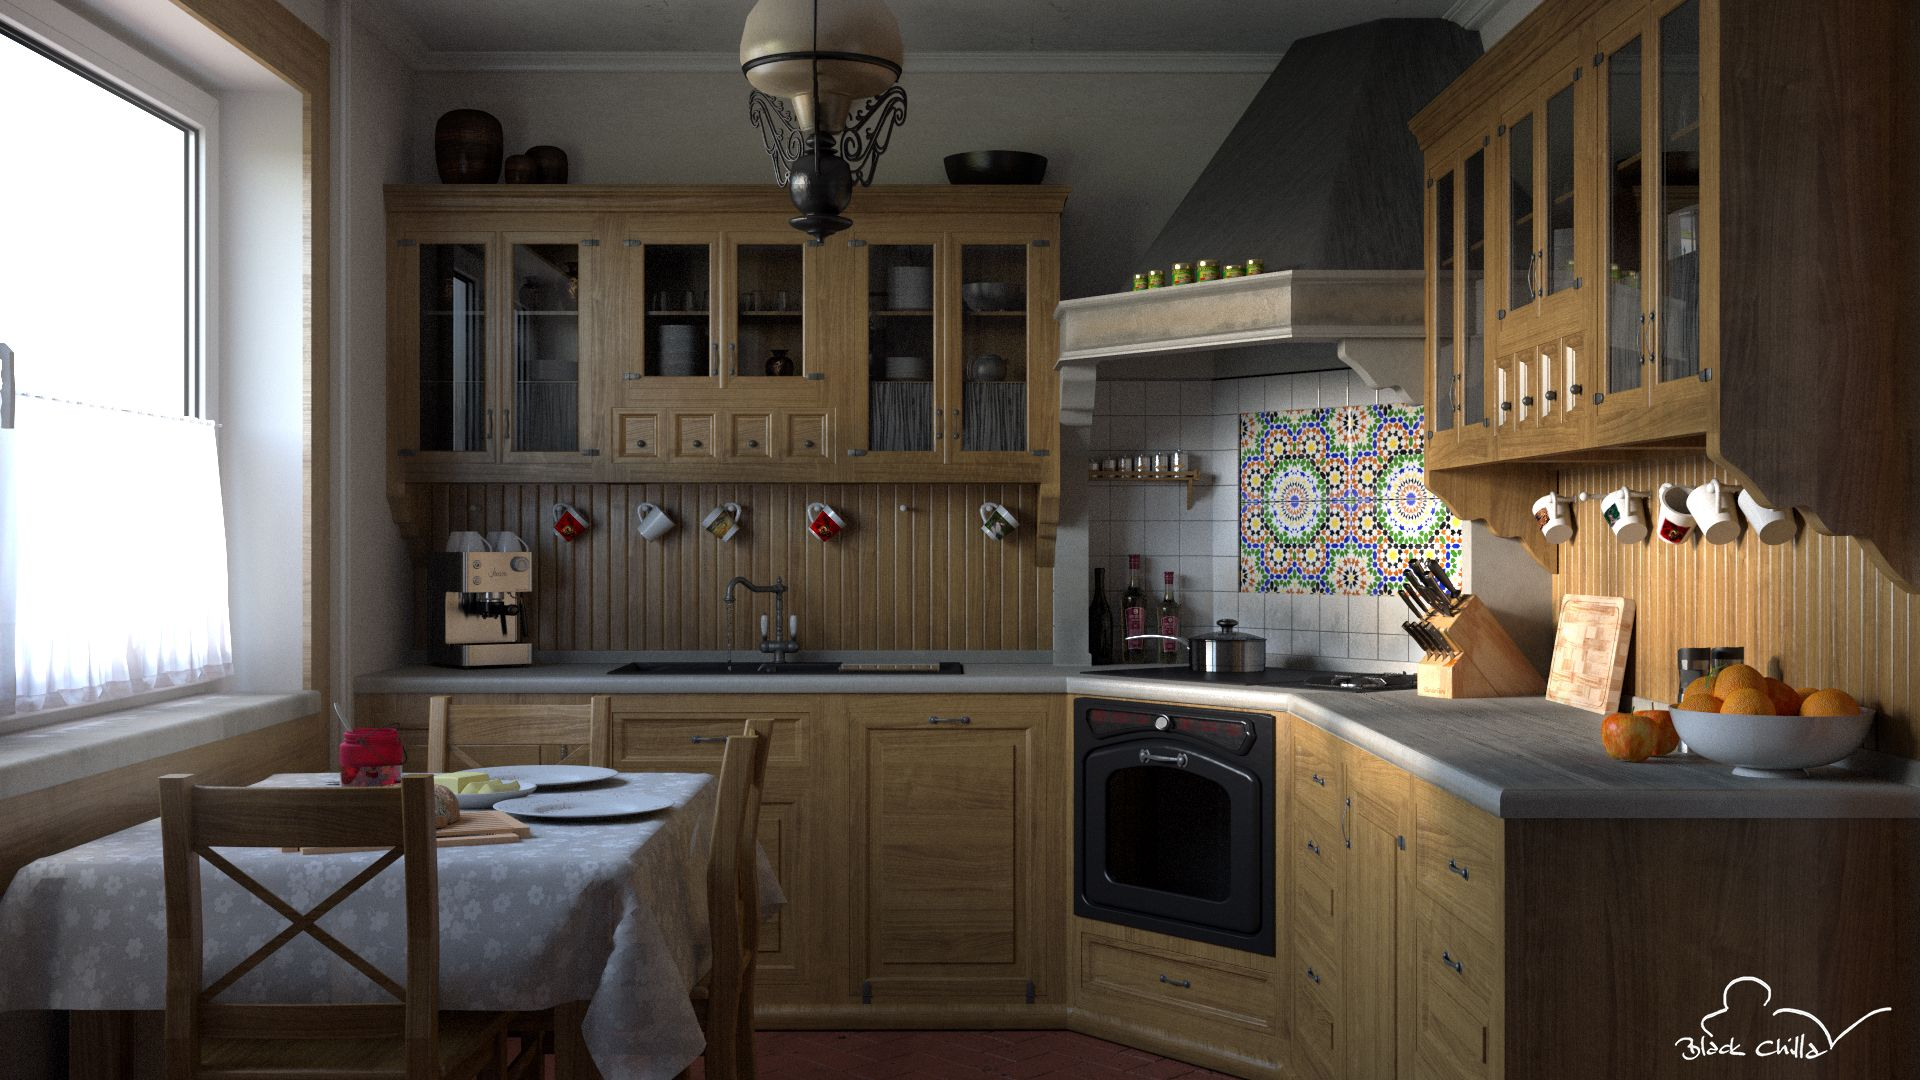 https://www.google.pl/blank.html | best kitchen designs | Pinterest on french kitchen countertops, french rustic bathroom, french rustic interiors, french country kitchen ideas, french rustic doors, french rustic range hoods, french kitchen design ideas, french themed kitchen ideas, french country kitchen color palette, french bedroom, french kitchen remodeling ideas, french rustic lighting, french dining room, french rustic furniture, french kitchen cabinets, french white kitchen ideas, french rustic curtains, french rustic design, french rustic decor, french rustic style,